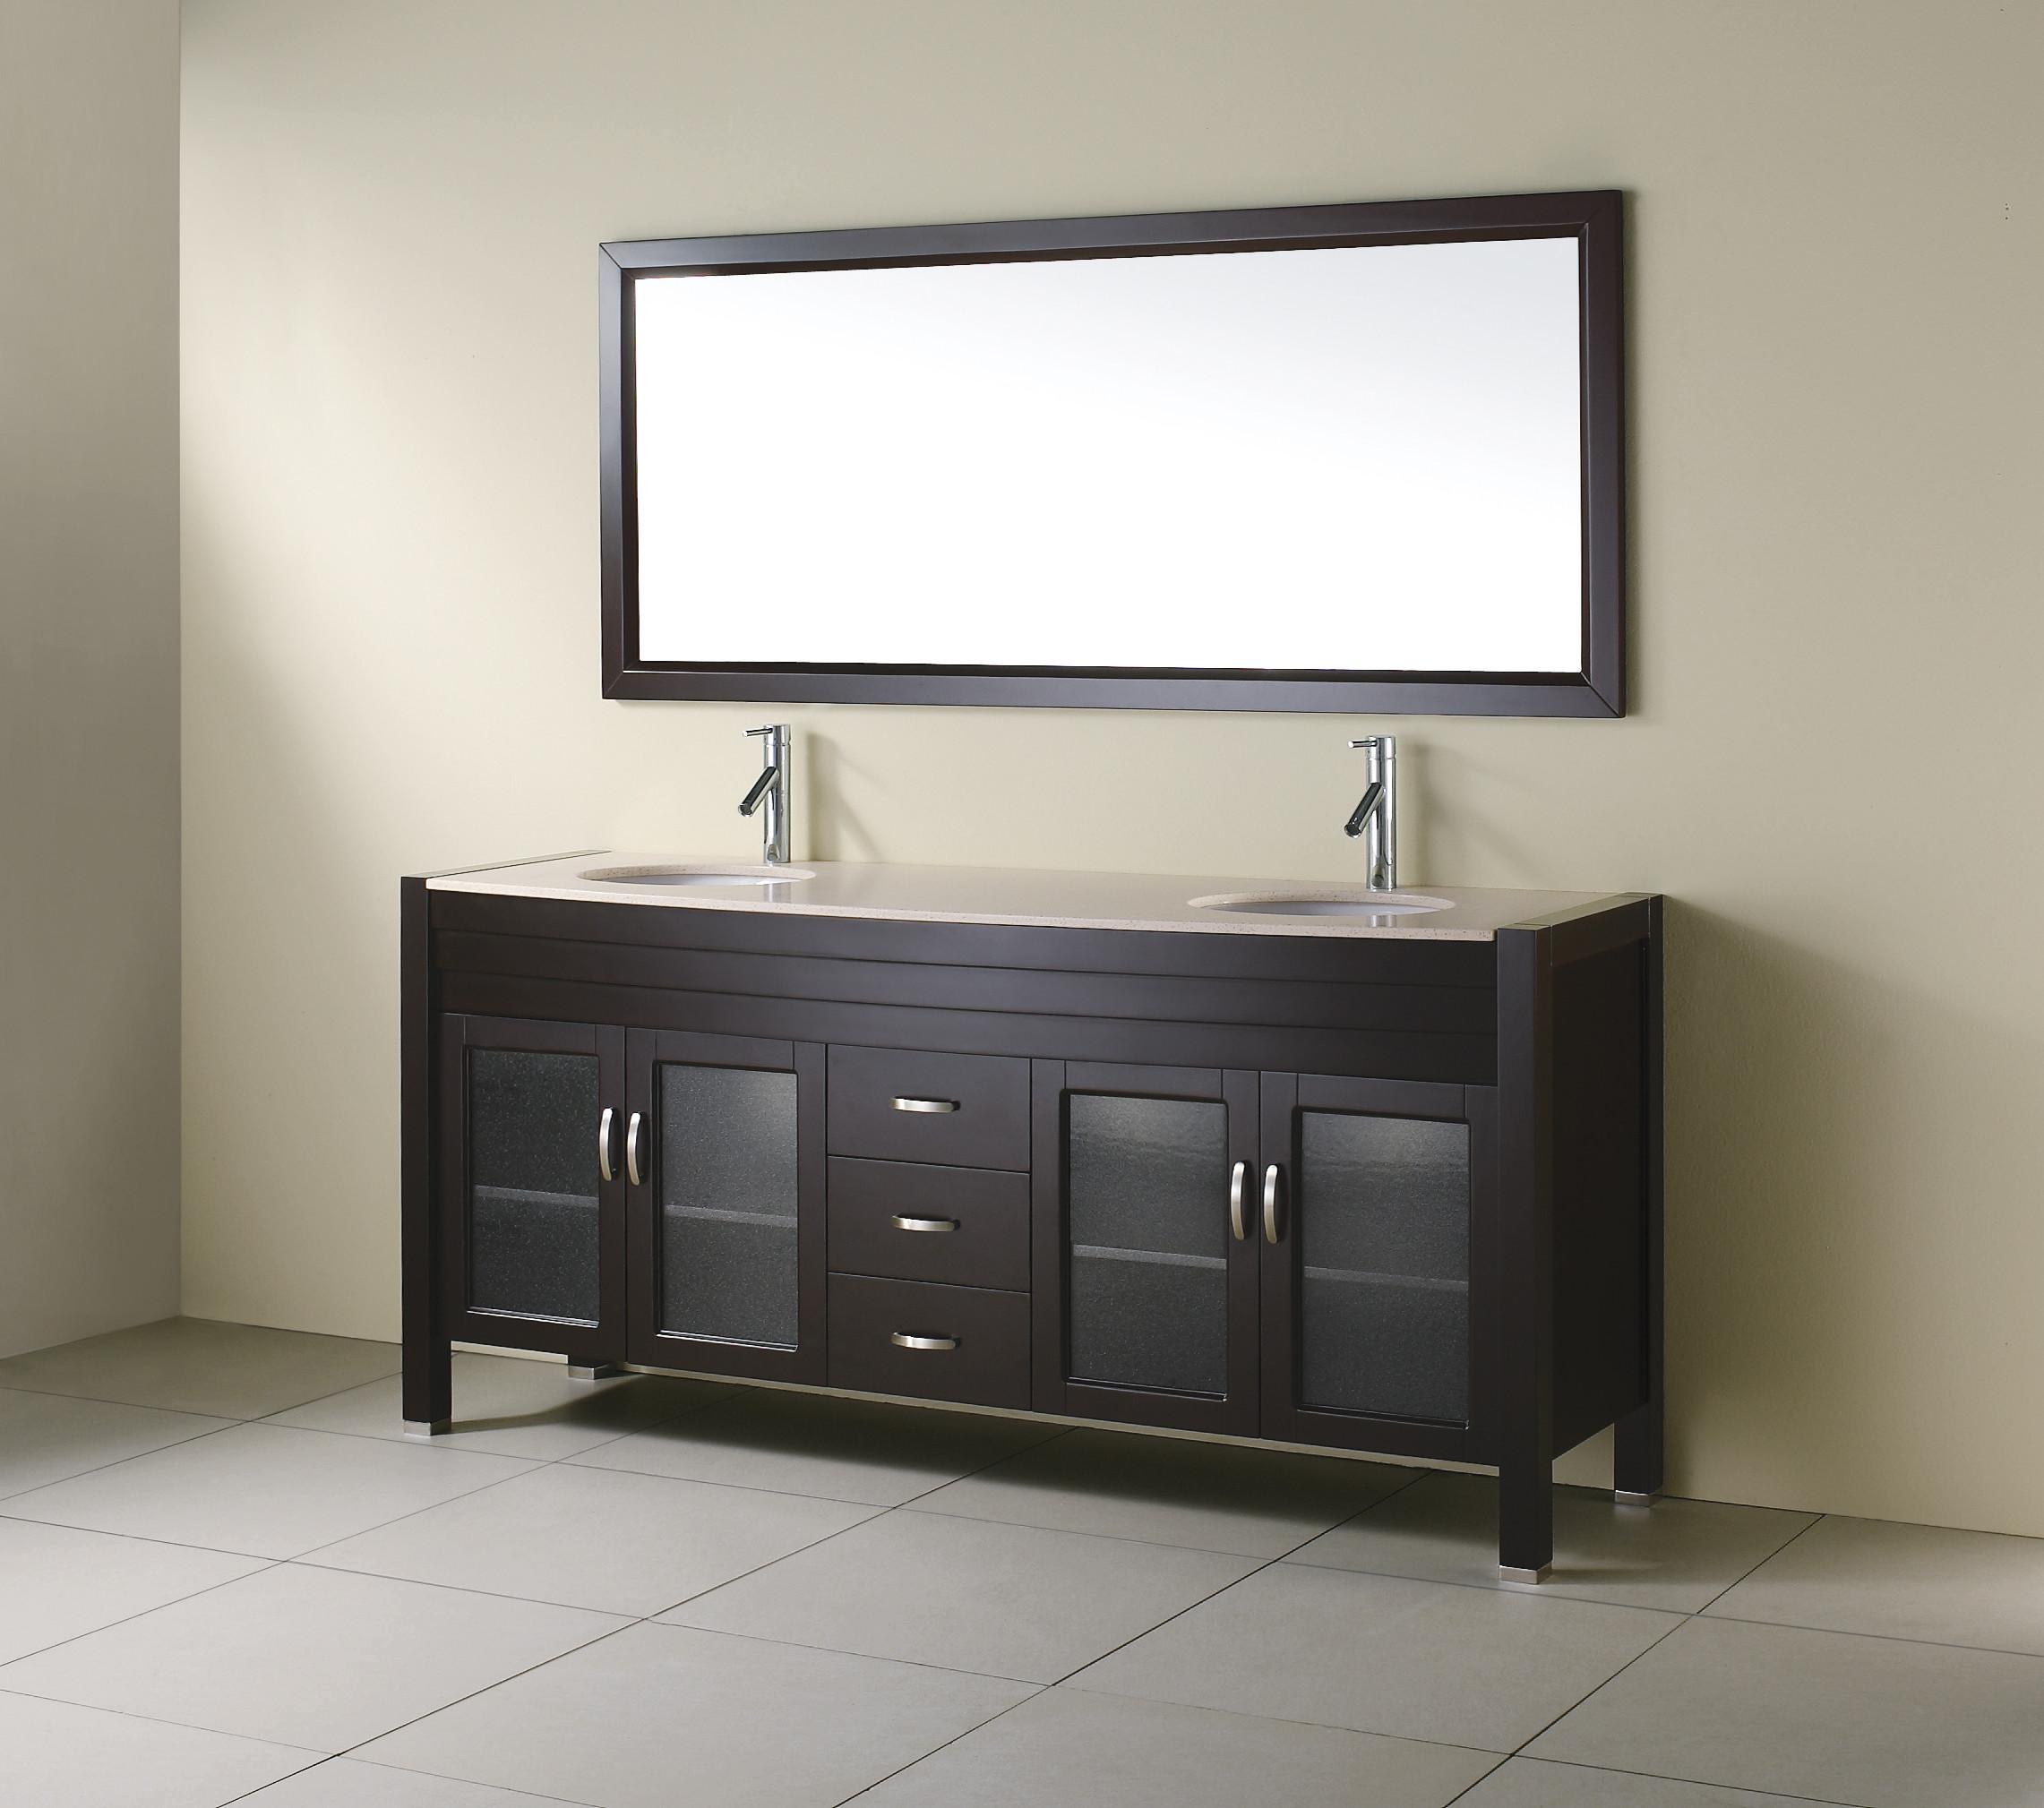 Bathroom Vanities Complete Guide Cabinets Sinks